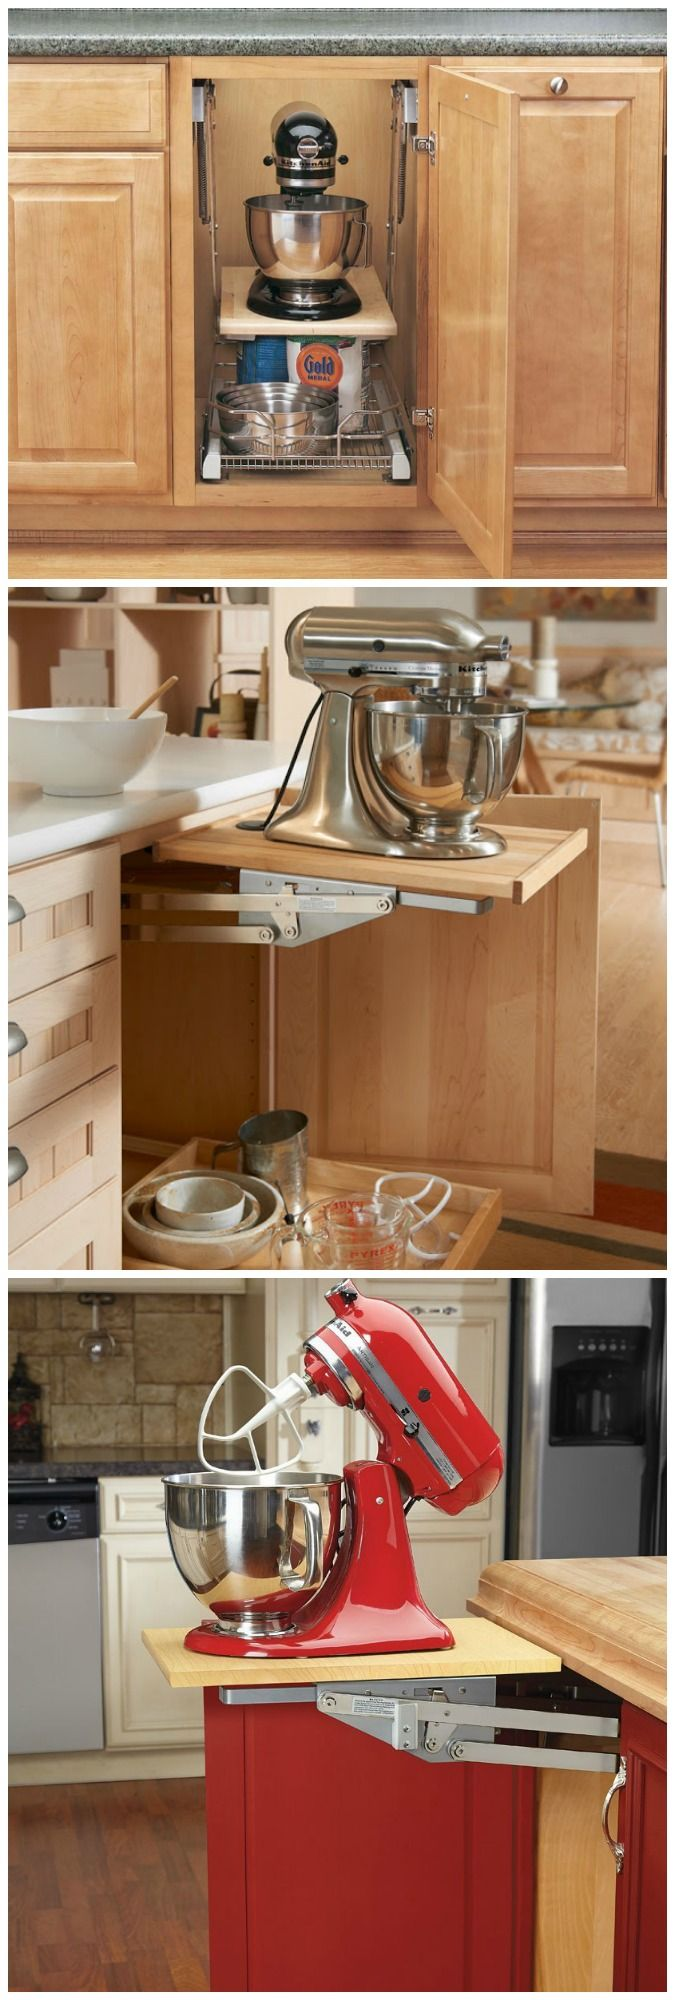 Rev-A-Shelf Appliance Lift: Unique Storage Solution for your Heavy ...